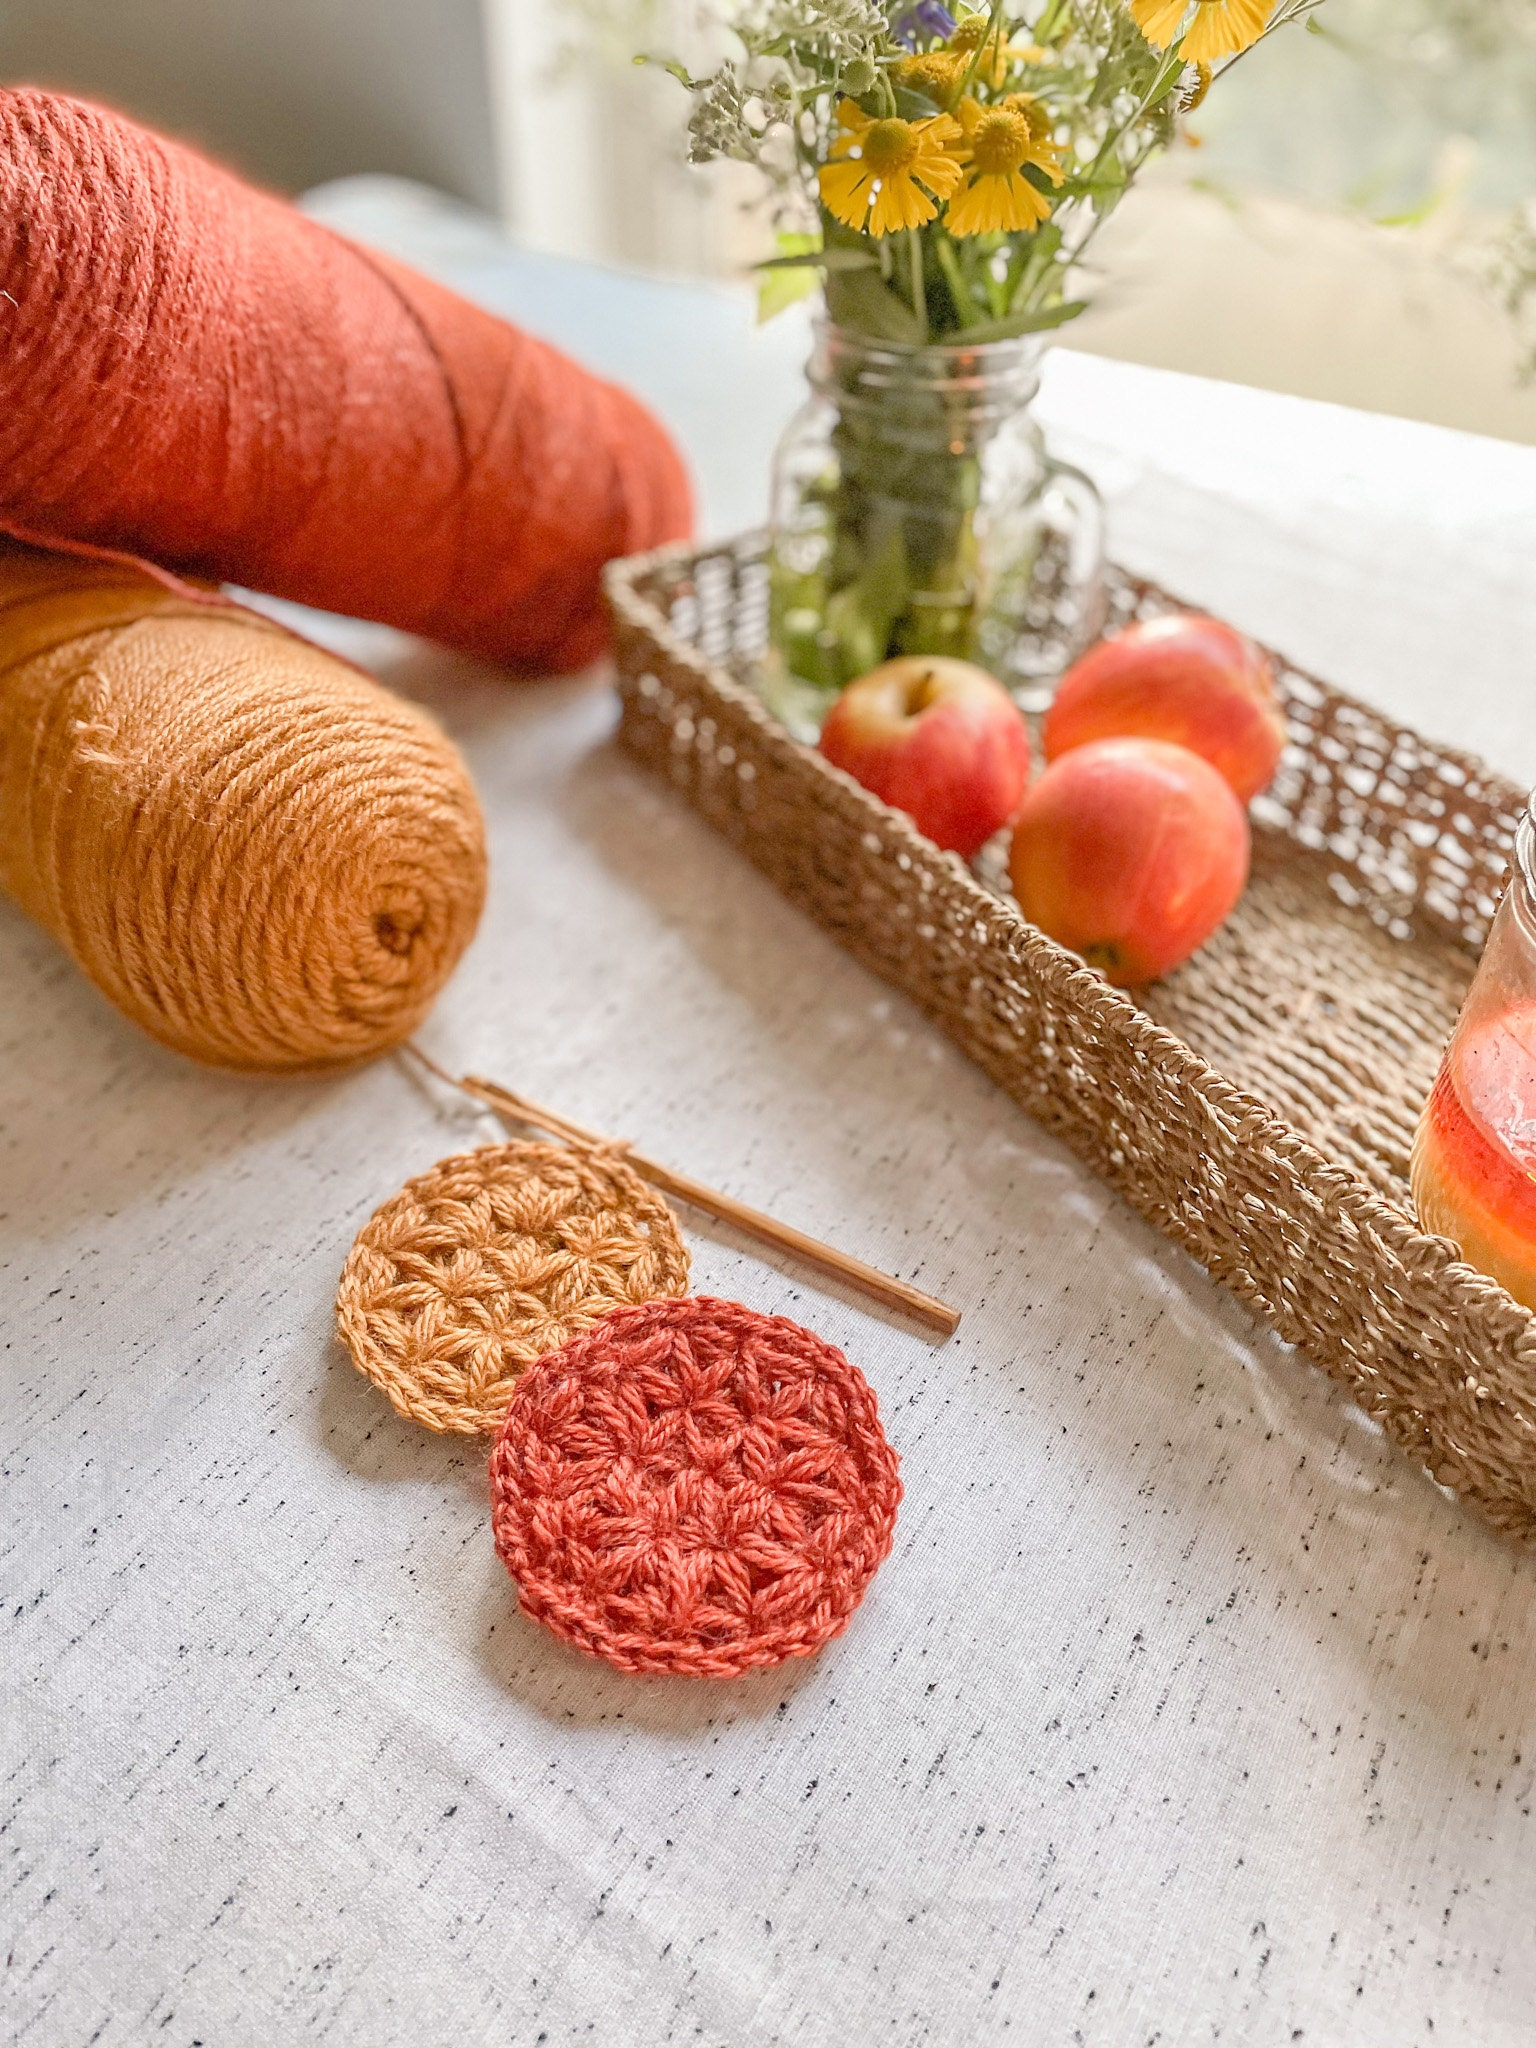 Crochet Fall Leaf Coasters, Yarn, Wildflowers, and apples in a basket